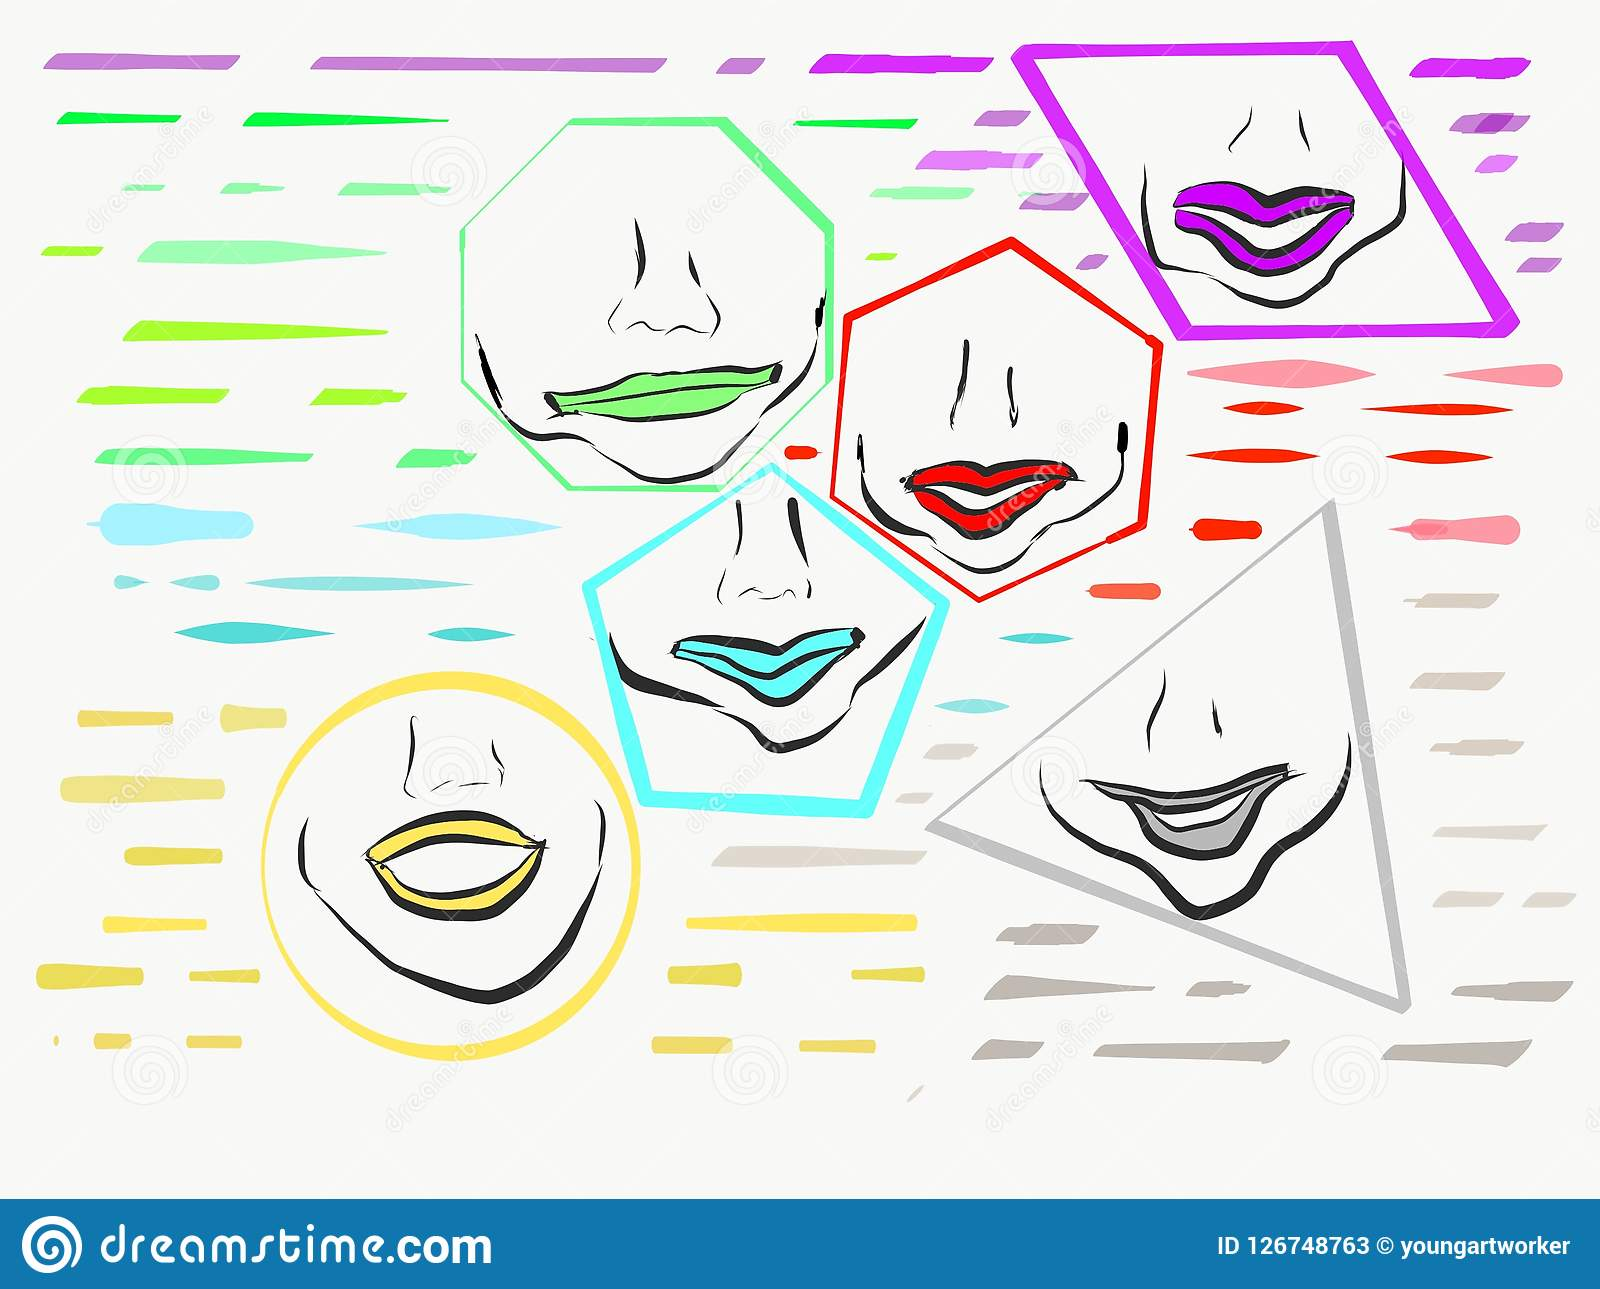 Lips Inside Shapes of Different Colors Circle Triangle Trapezoid Pentagon Hexagon Octagon Photo Art Illustration Abstract Child